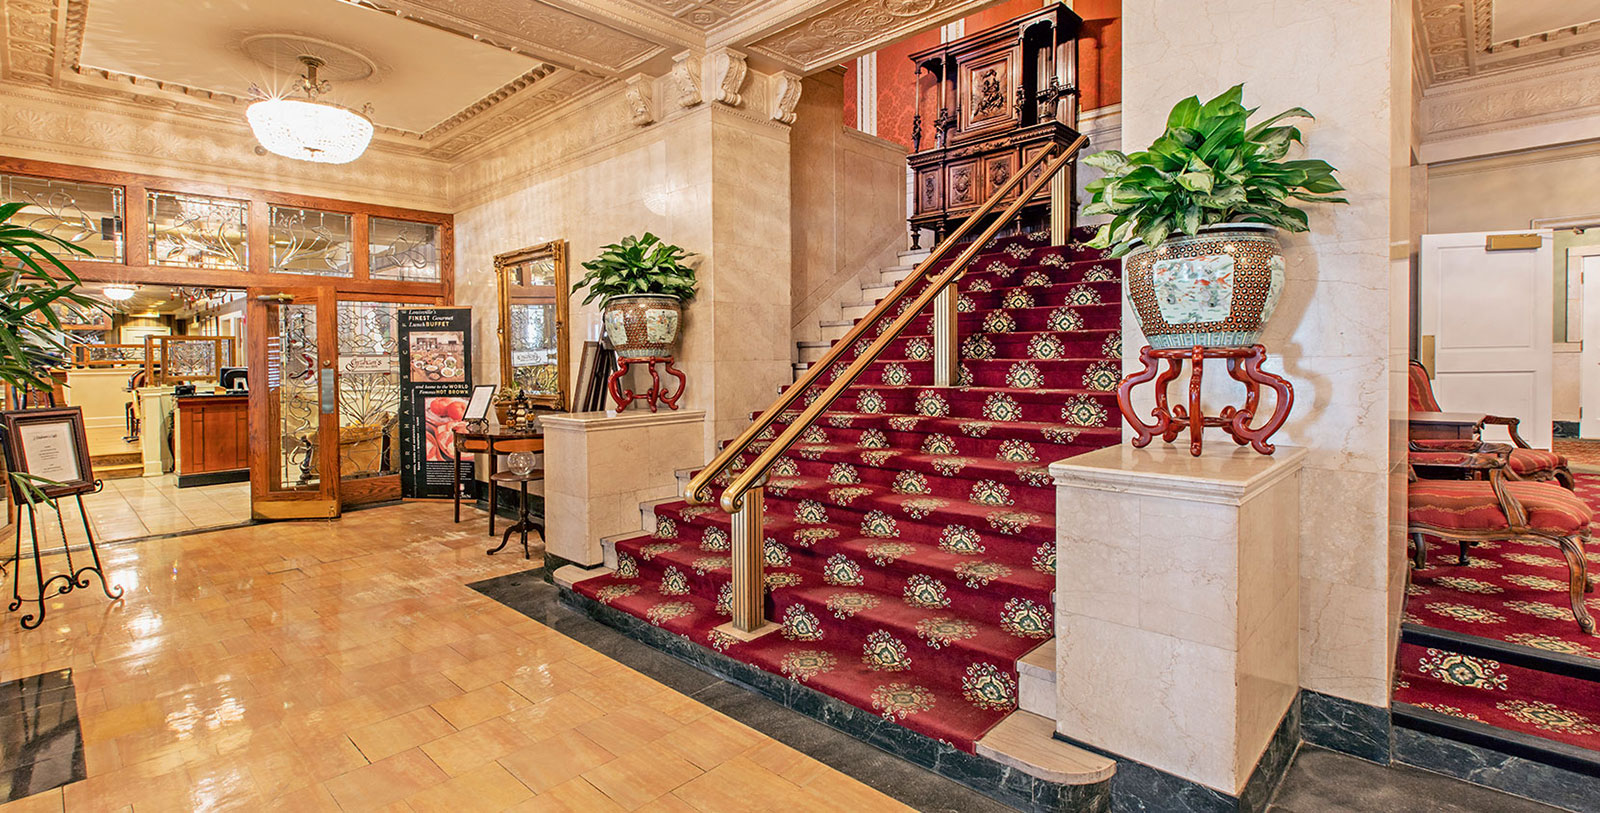 Image of Lobby Stairs The Brown Hotel, 1923, Member of Historic Hotels of America, in Louisville, Kentucky, Experience